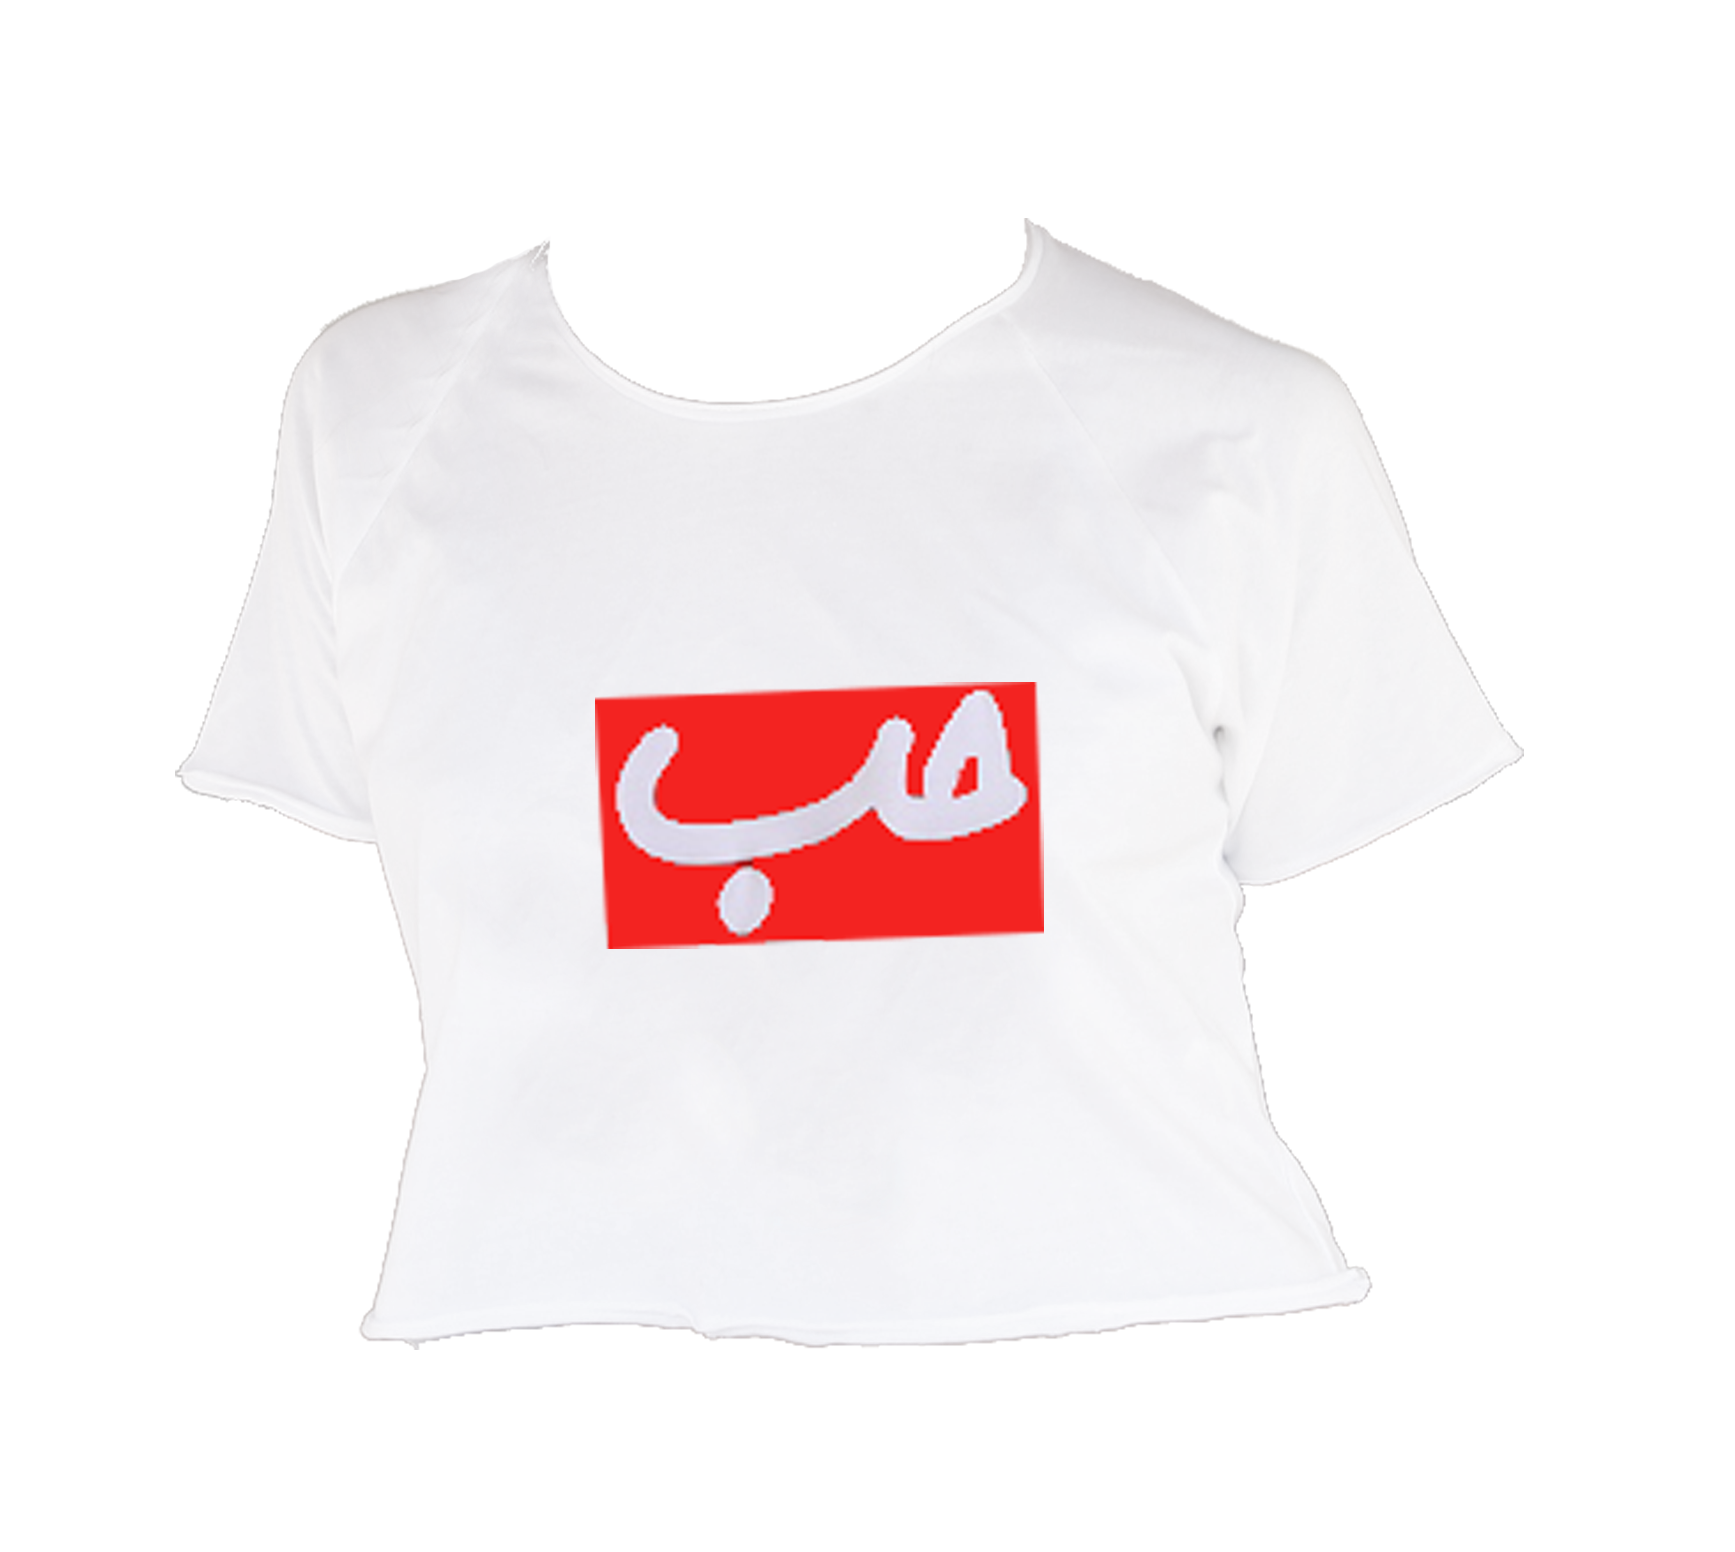 e6174ba1ba6 White Crop Top With Red Patch Hob - Lebelik